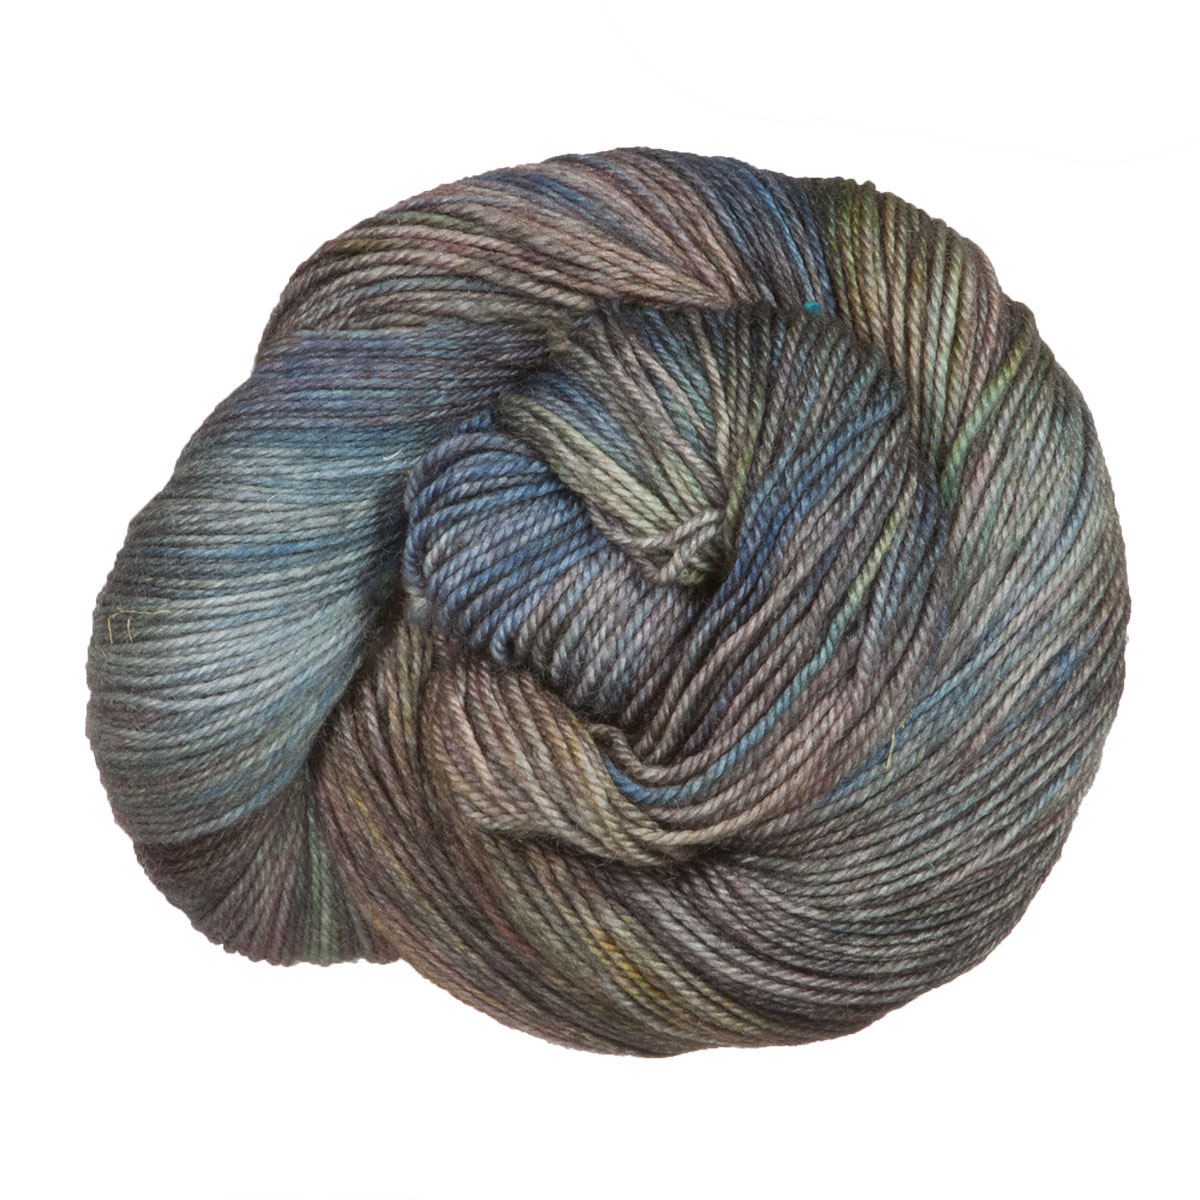 New Sock Yarn image #1 xtbqova